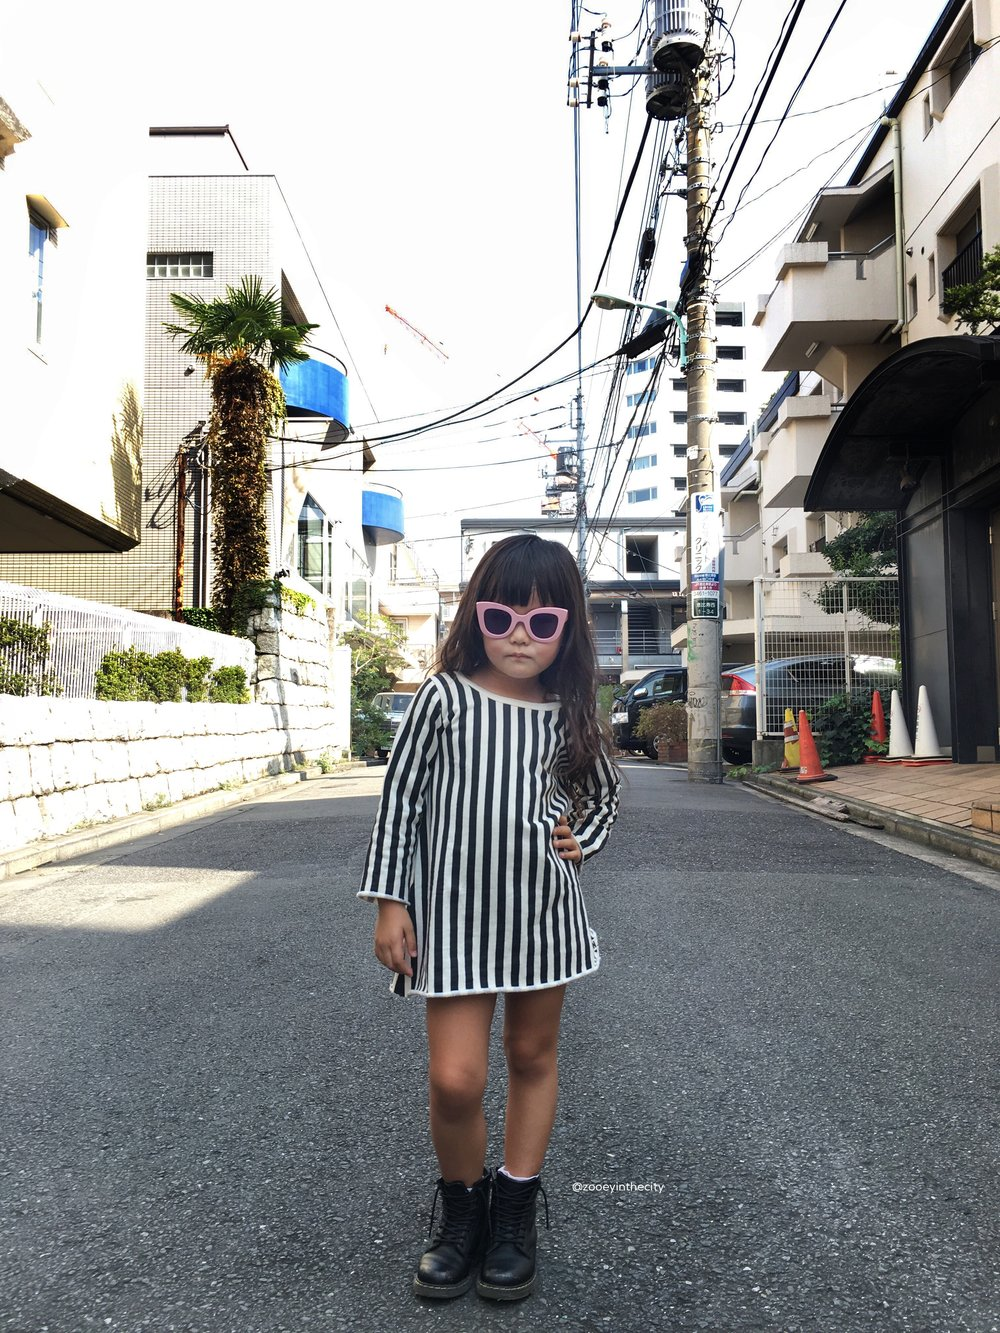 Sunnies: Son + Daughters Eyewear,Dress: Go Gently Nation,Boots: Dr Martens